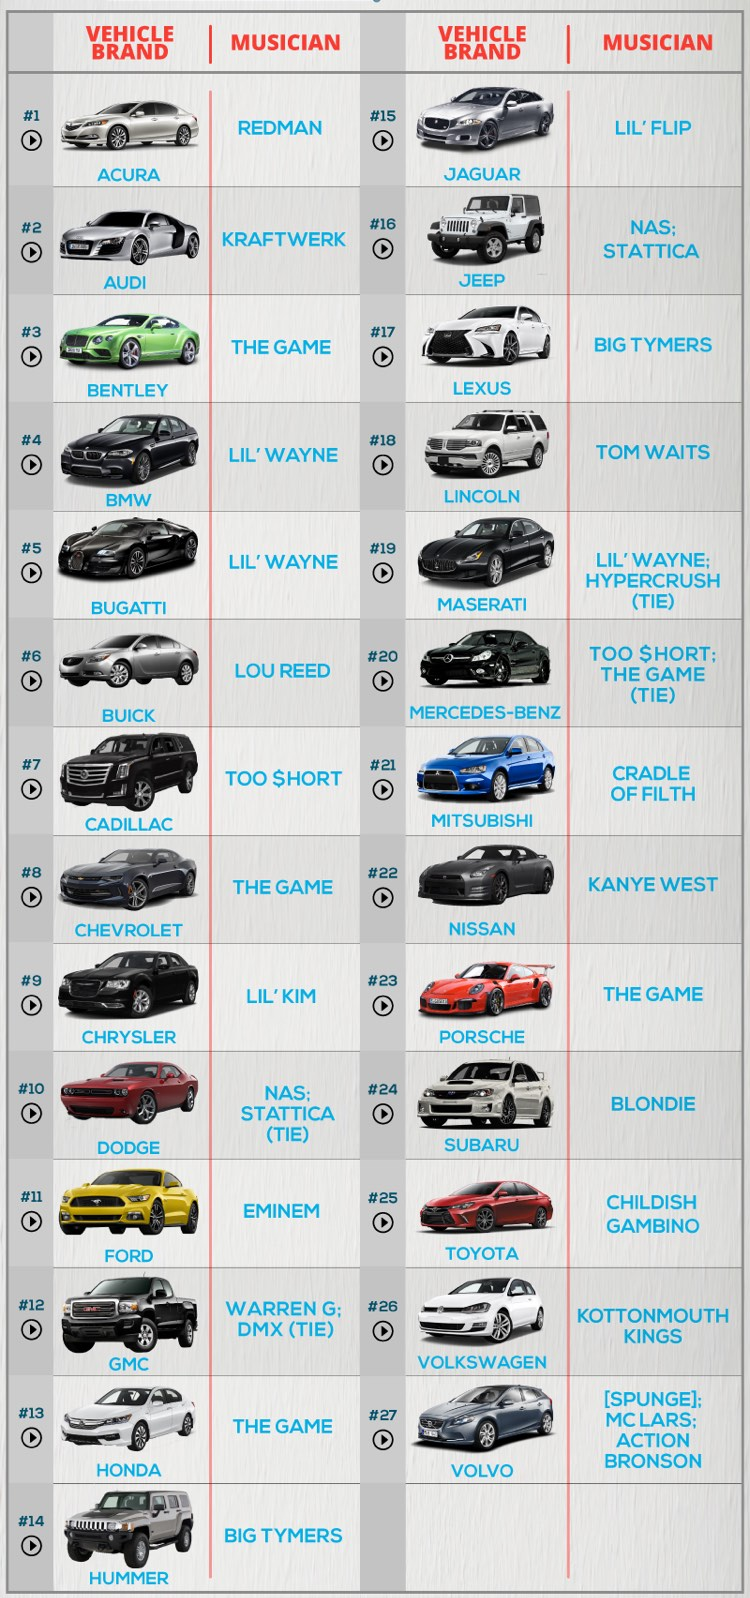 What Car Brands Are Most Frequently Mentioned by Musicians?